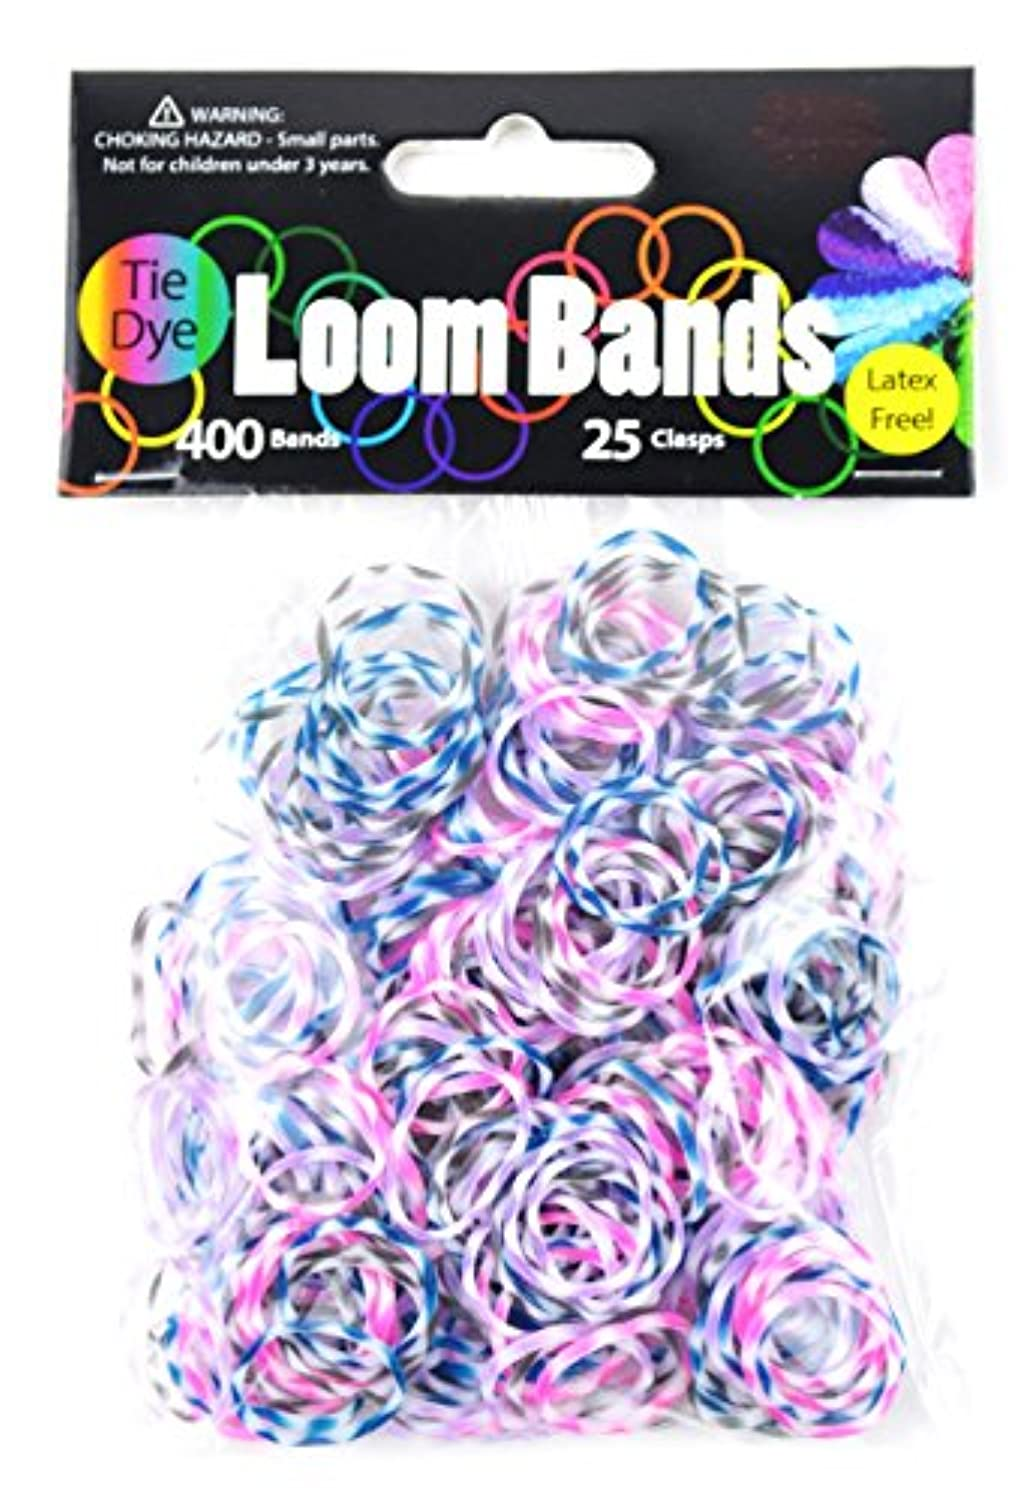 Midwest Design Imports Loom Bands Plum Blossom Tie Dye, Includes 400 Bands and 25 Clasps by Midwest Design Imports, Inc.